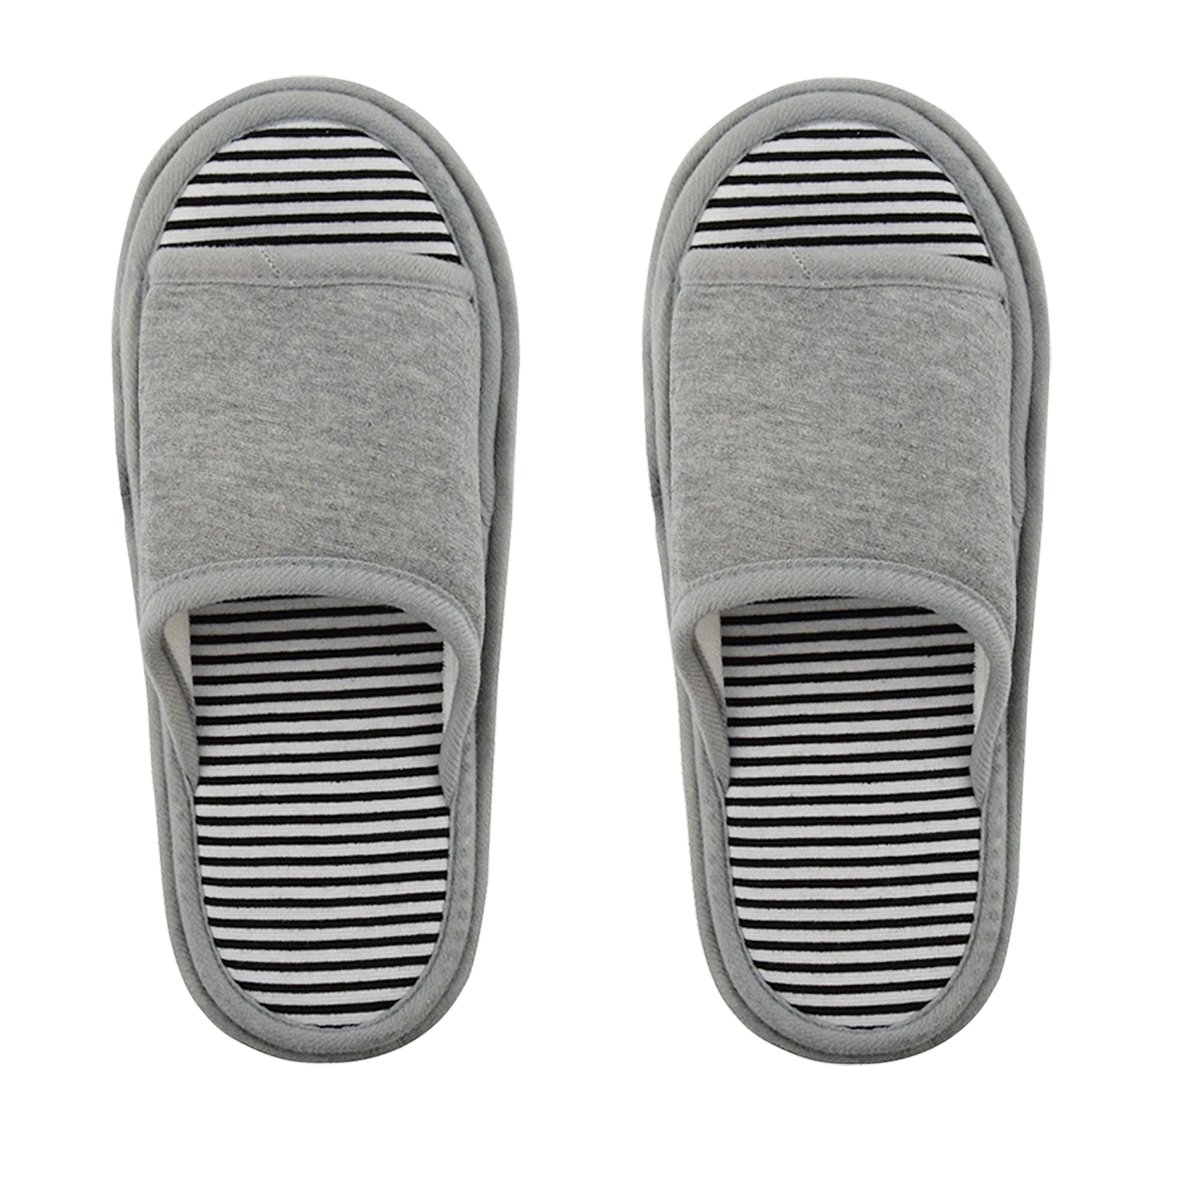 Unisex Slipper Floor Cleaning Mop Men and Women House Slippers Dust Cleaning Tool Slipper Genie (Grey, Women 7-10/Men5-8)